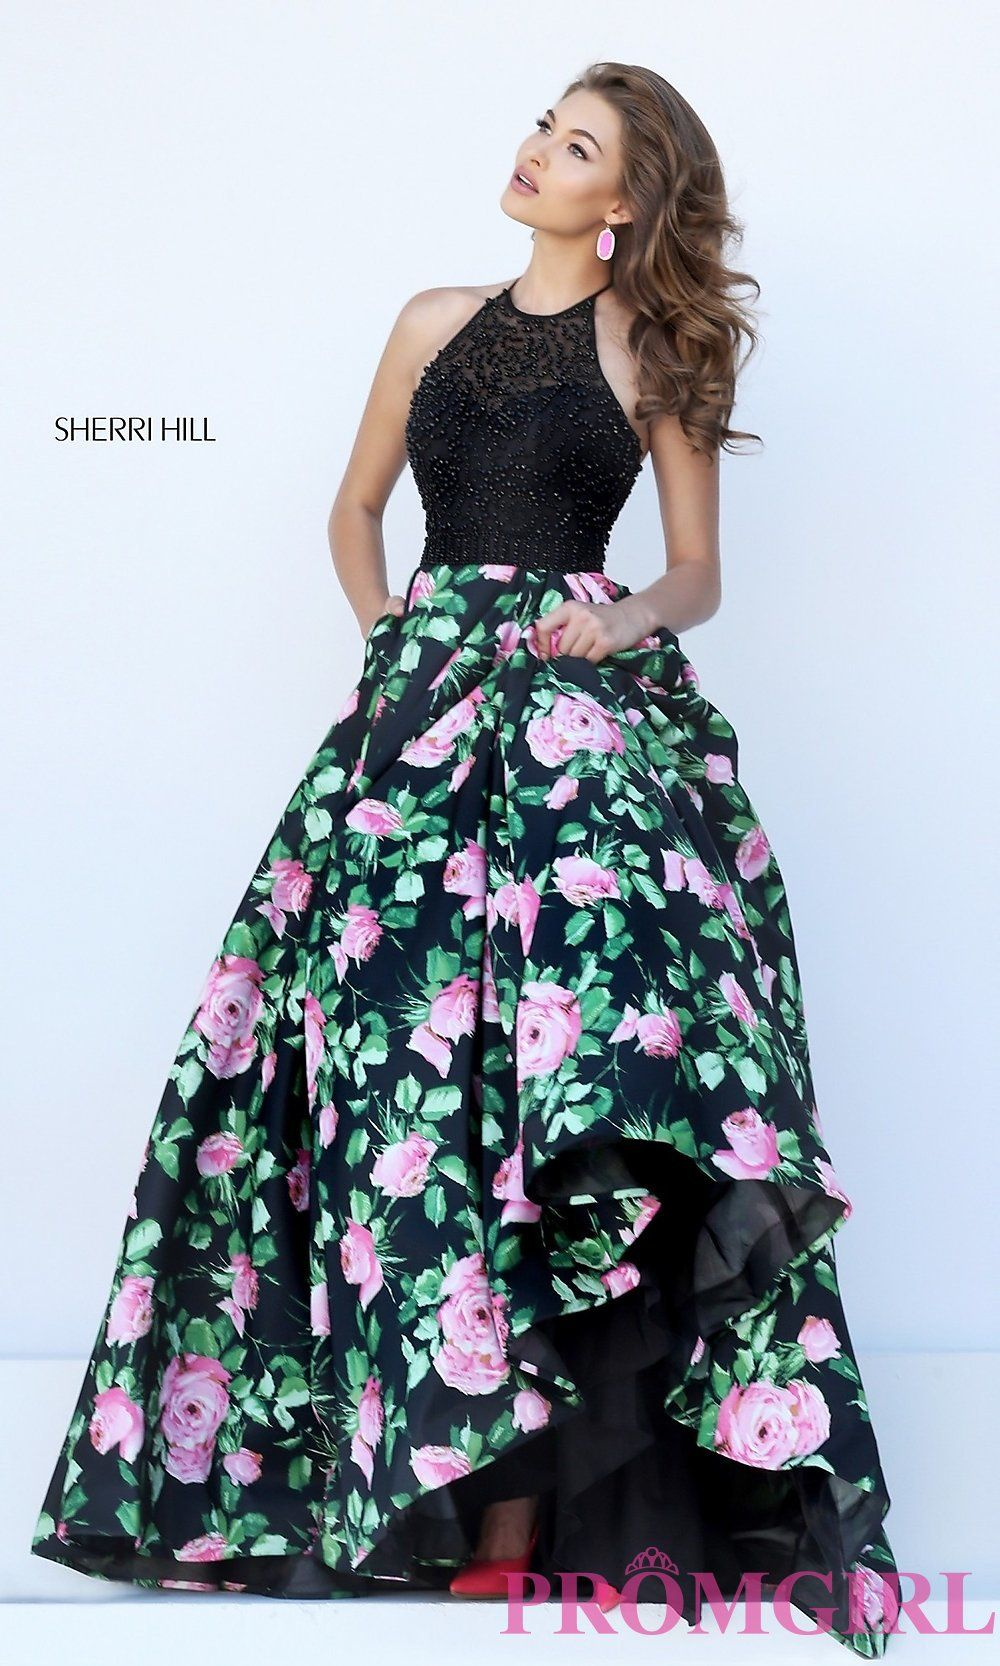 Prom dresses celebrity dresses sexy evening gowns high neck ball